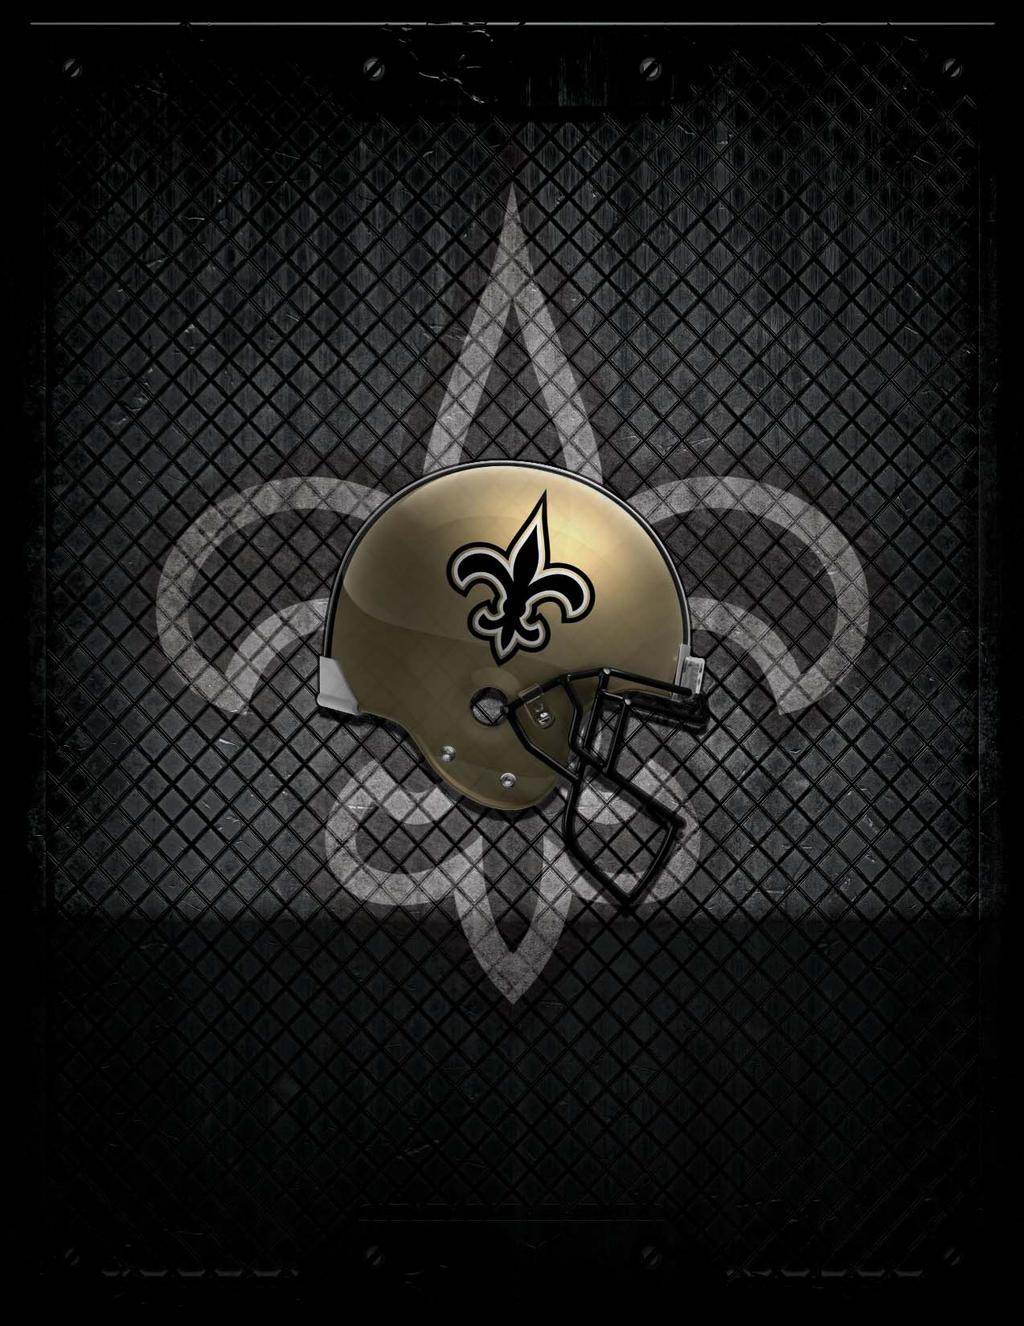 NEW ORLEANS SAINTS WEEKLY MEDIA INFORMATION